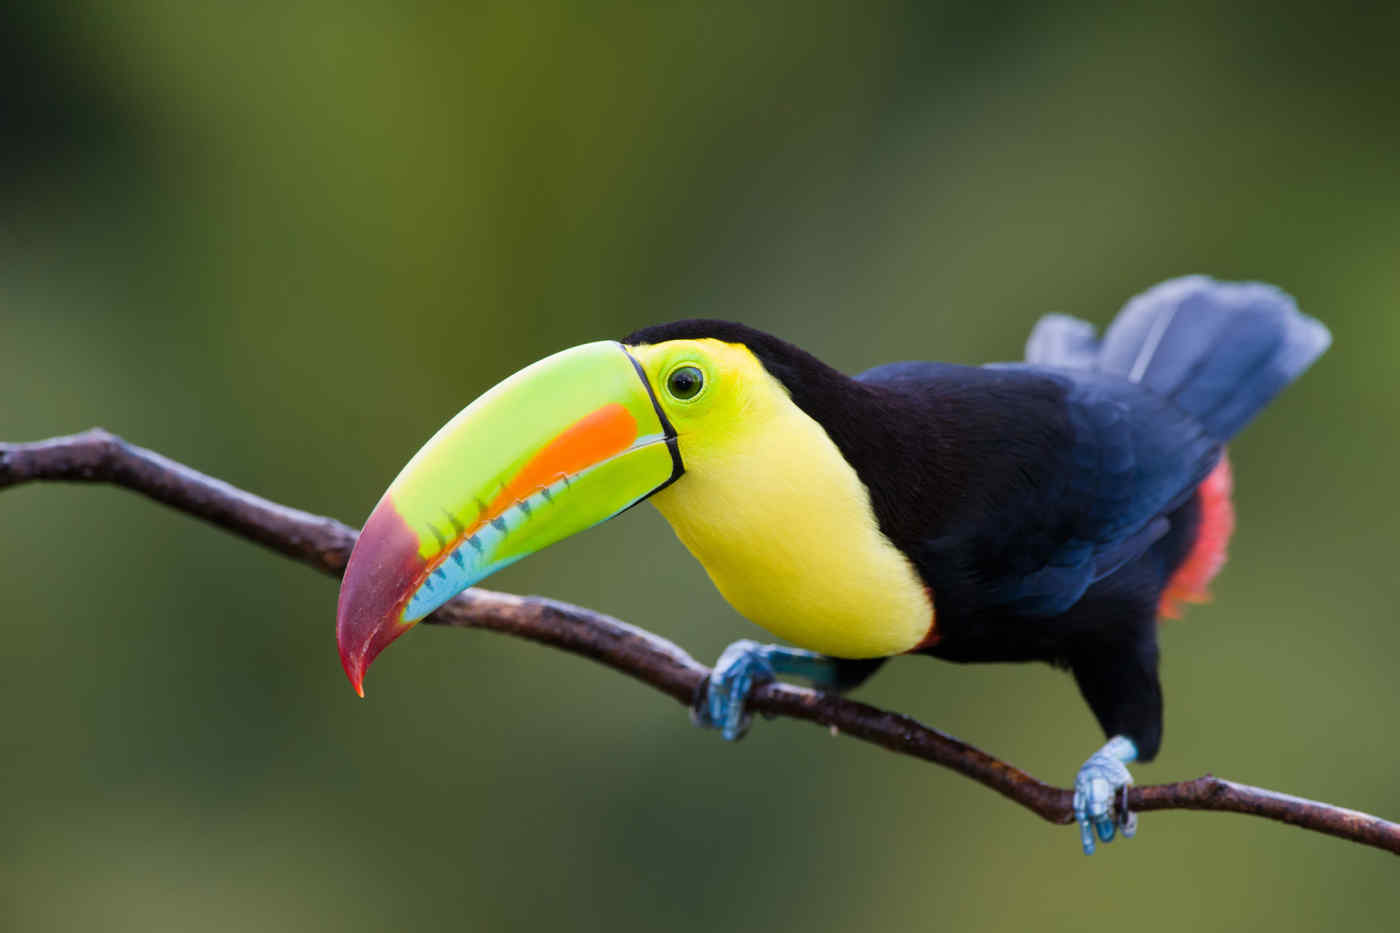 This is a toucan.